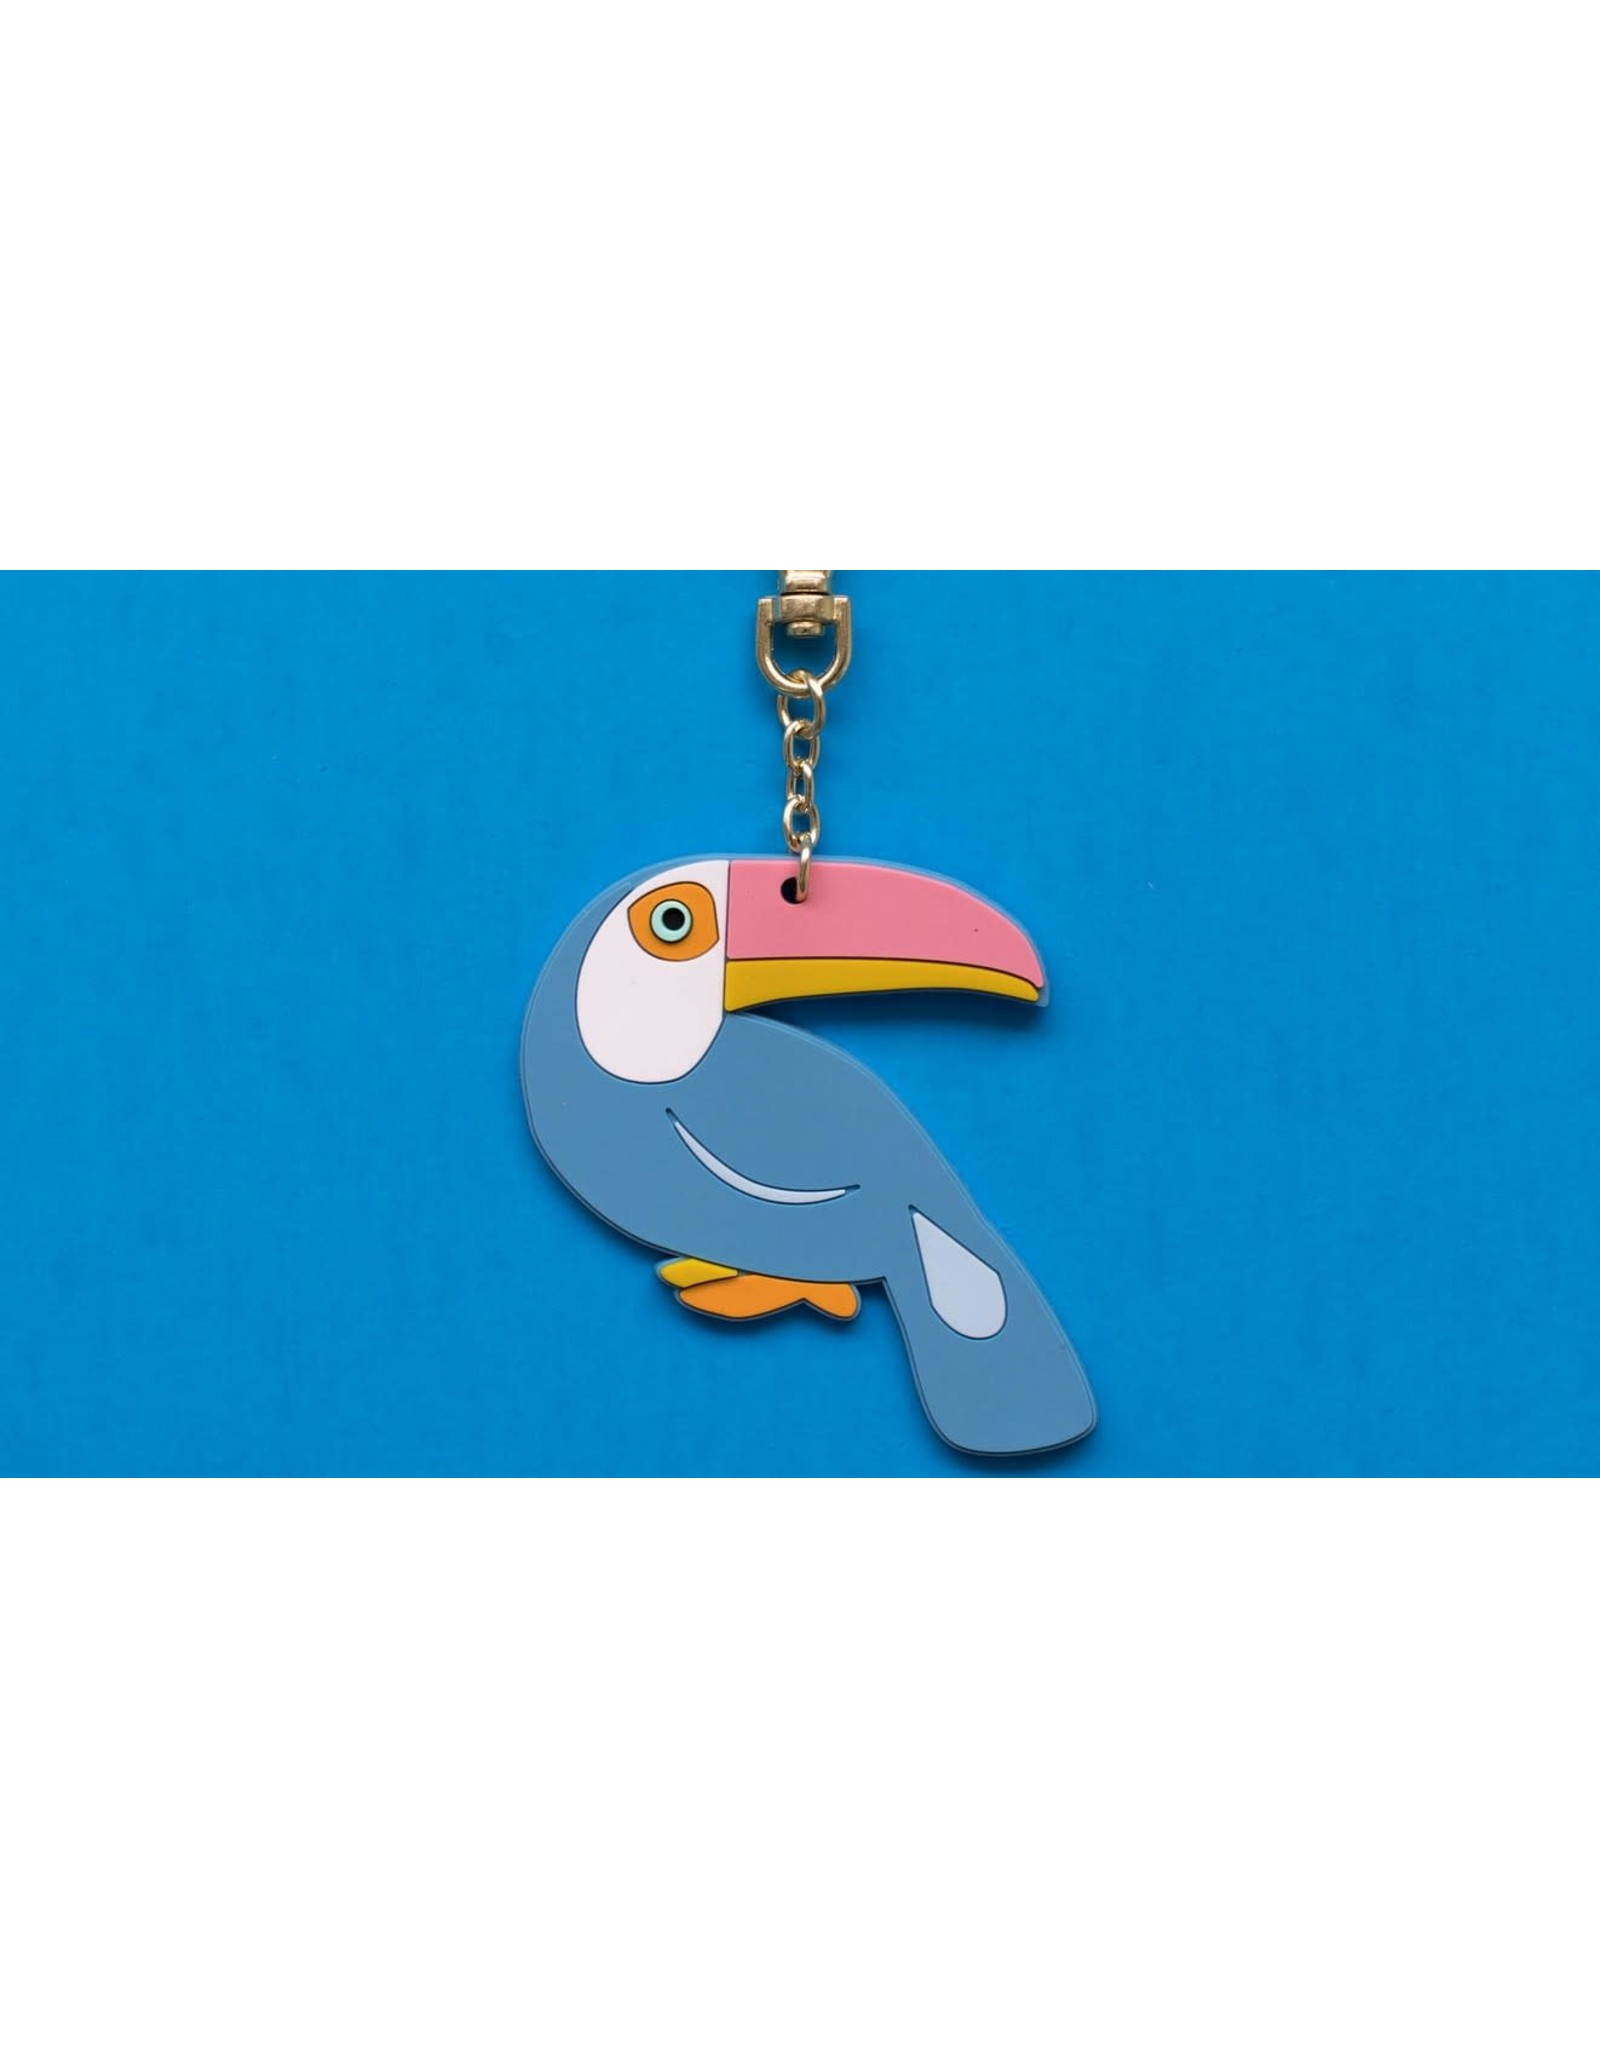 Can't Clutch This Toucan Keychain